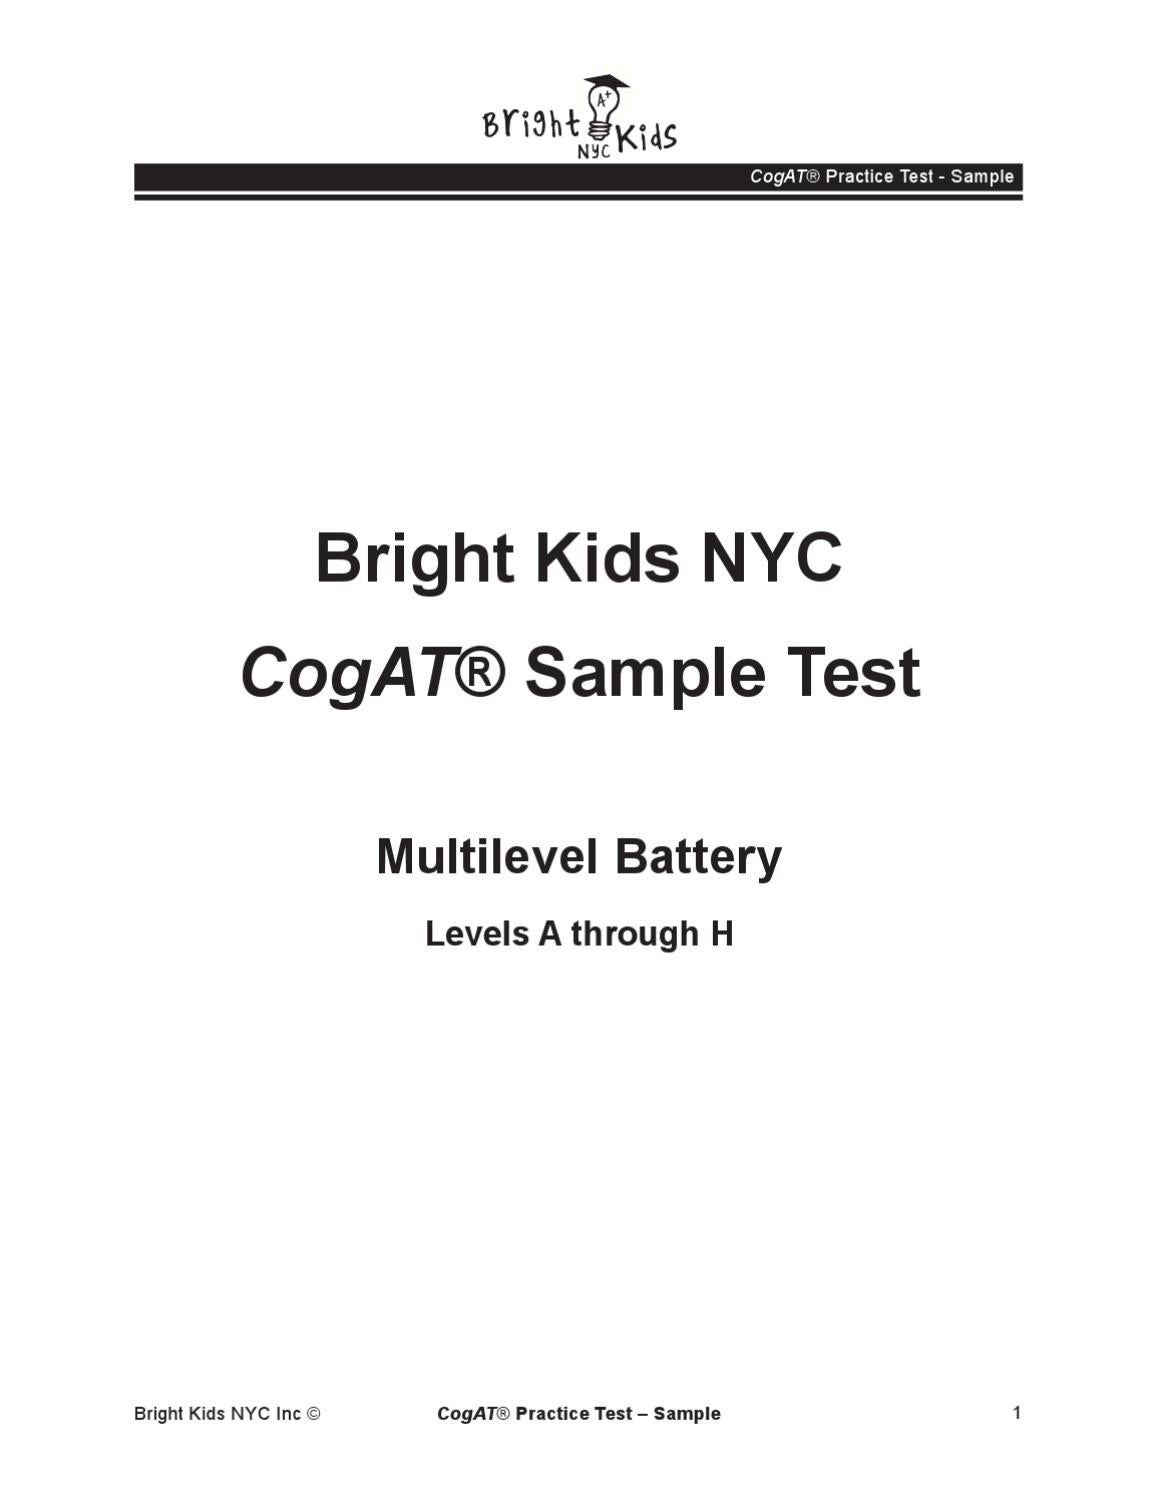 Cogat Test Prep Questions By Bright Kids Nyc Issuu